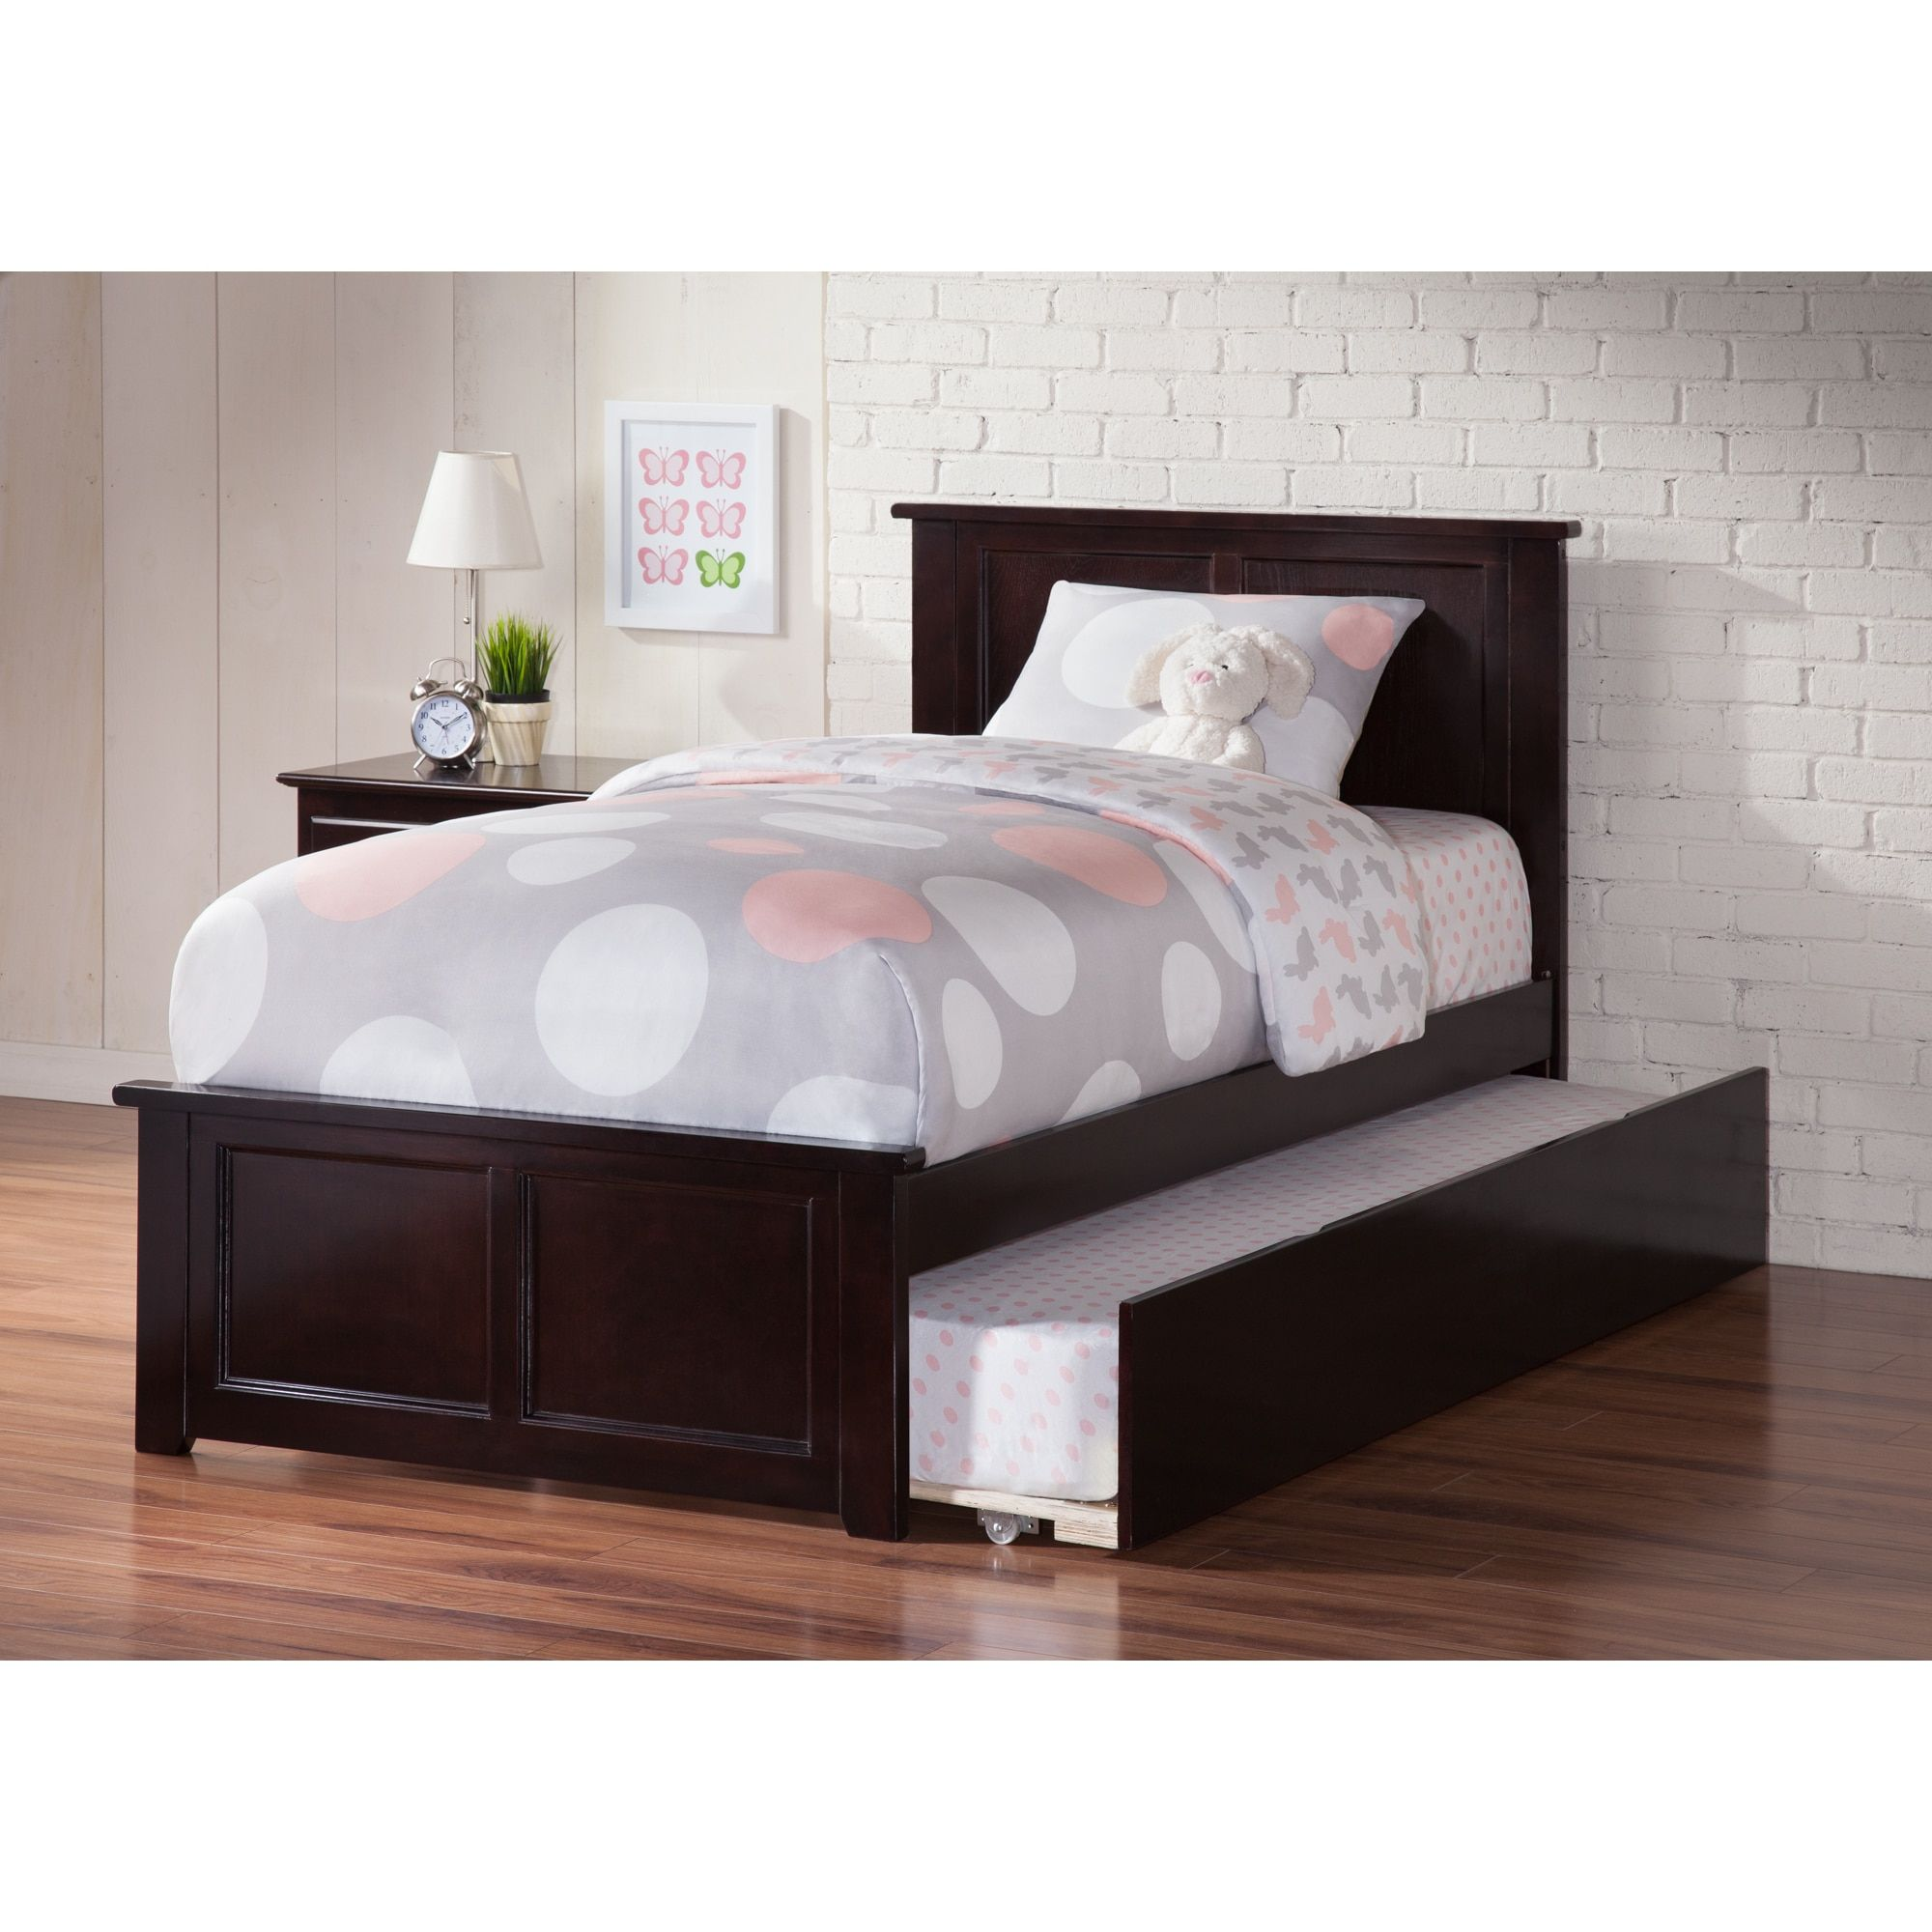 atlantic madison espresso twin bed with matching footboard and urban